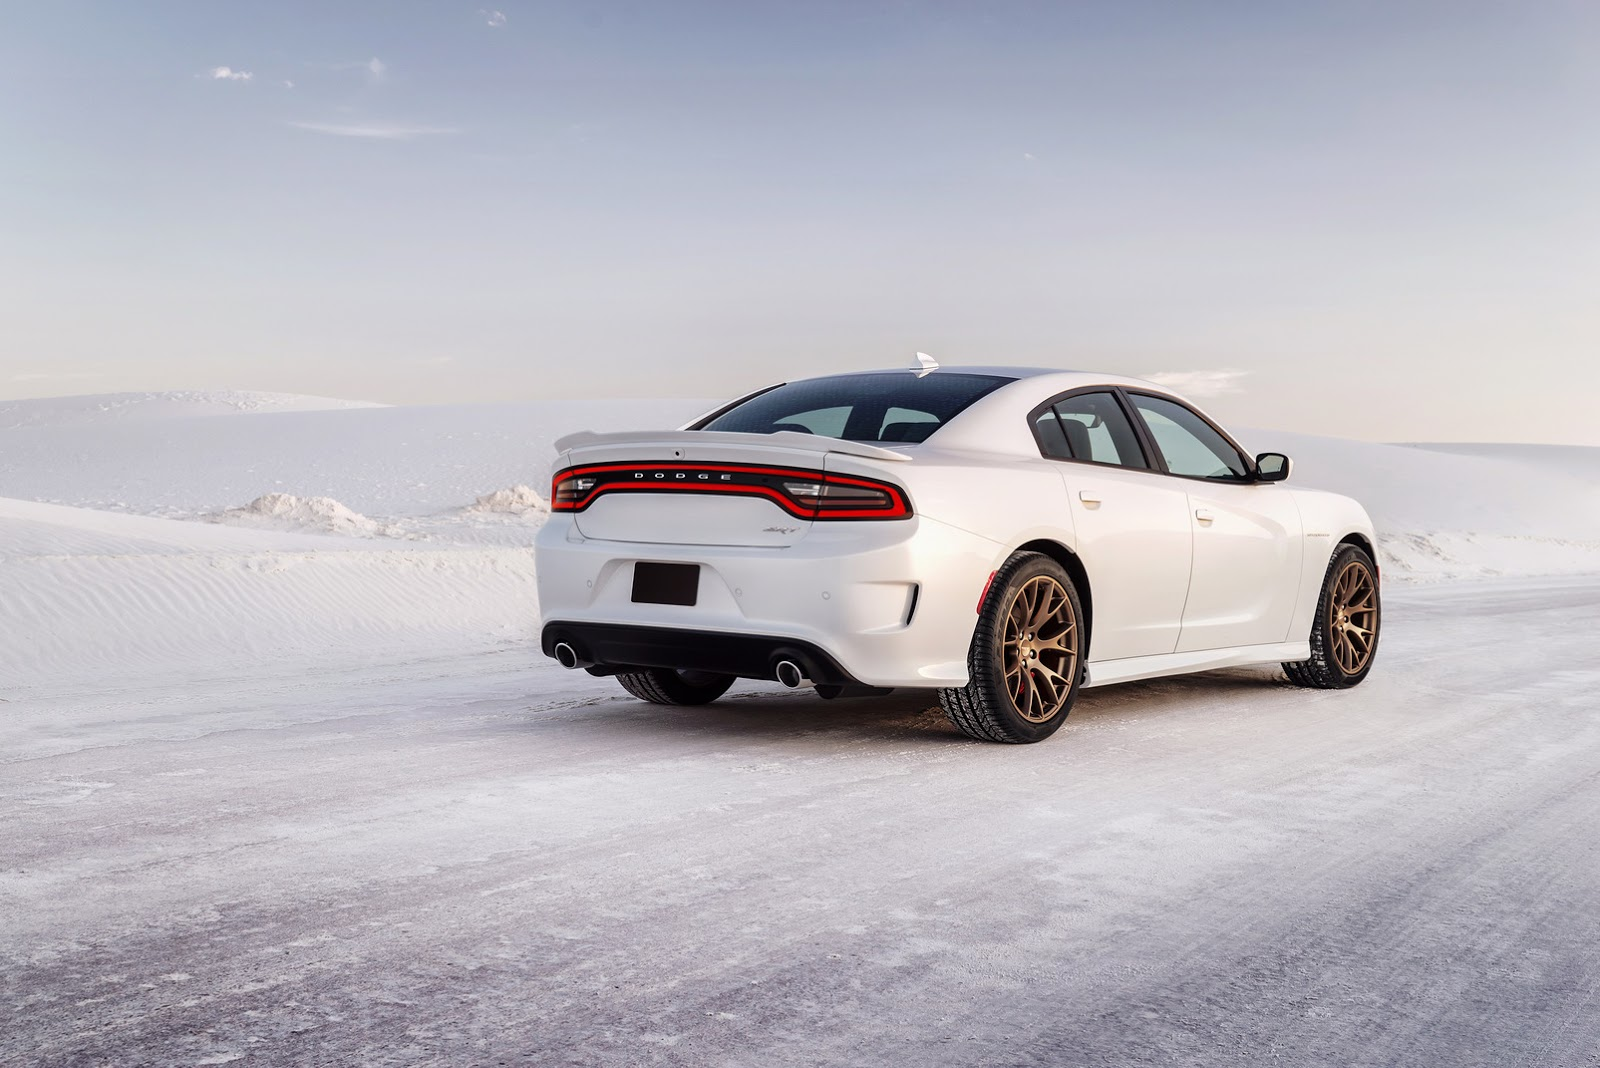 dodge says 2015 charger srt hellcat is the world 39 s fastest production sedan 142 pics carscoops. Black Bedroom Furniture Sets. Home Design Ideas